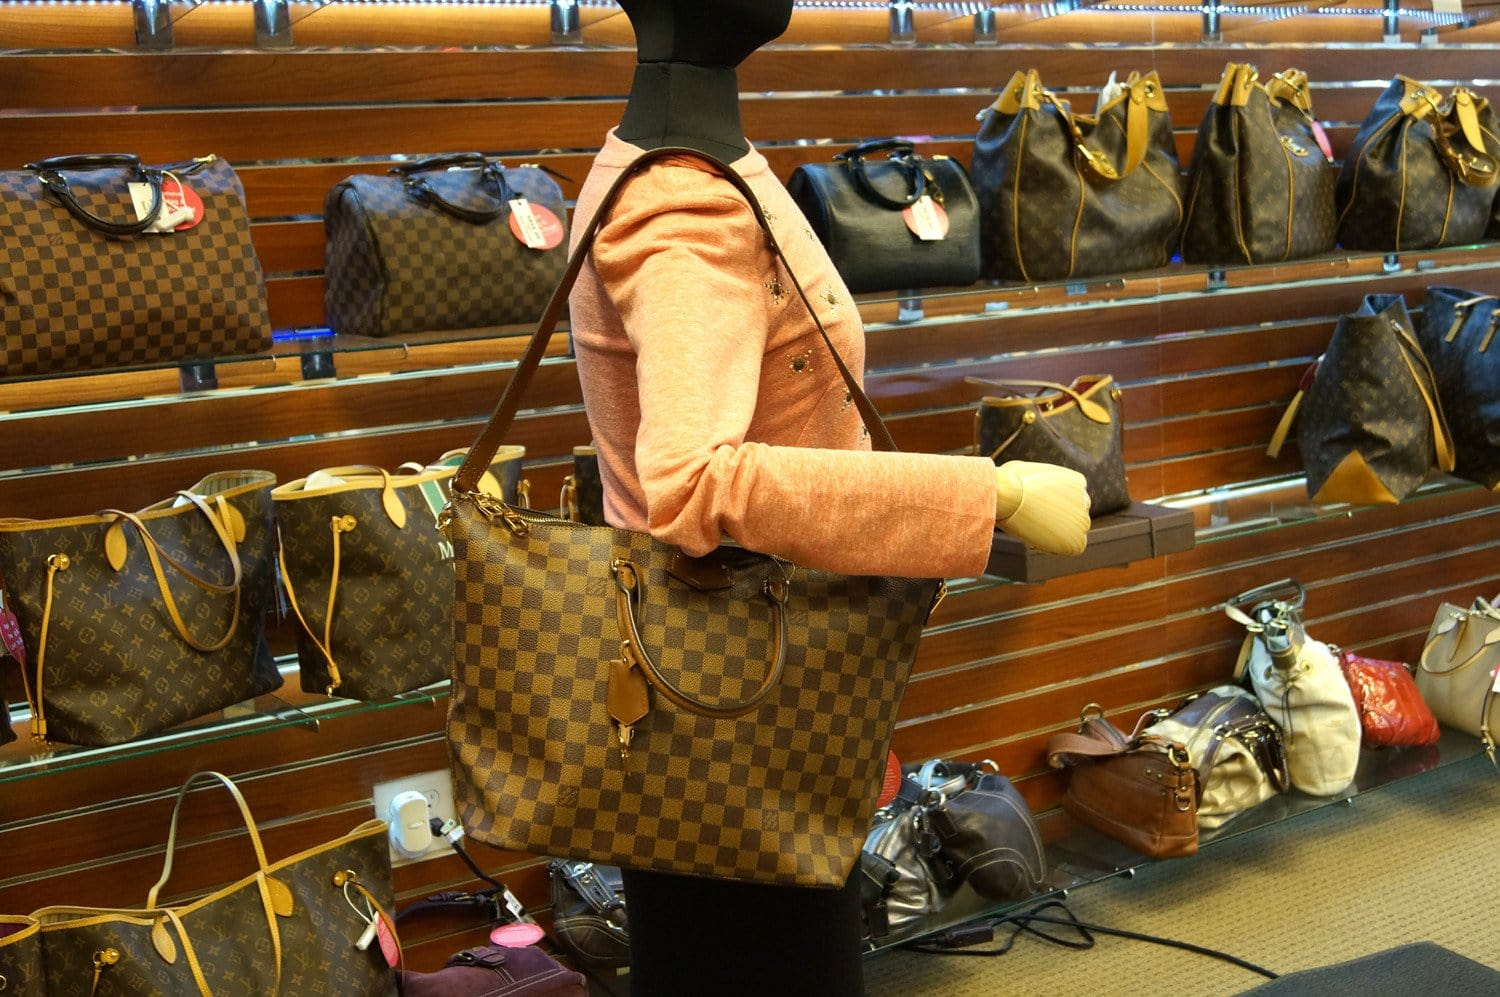 LOUIS VUITTON Damier Ebene Belmont Shoulder Handbag